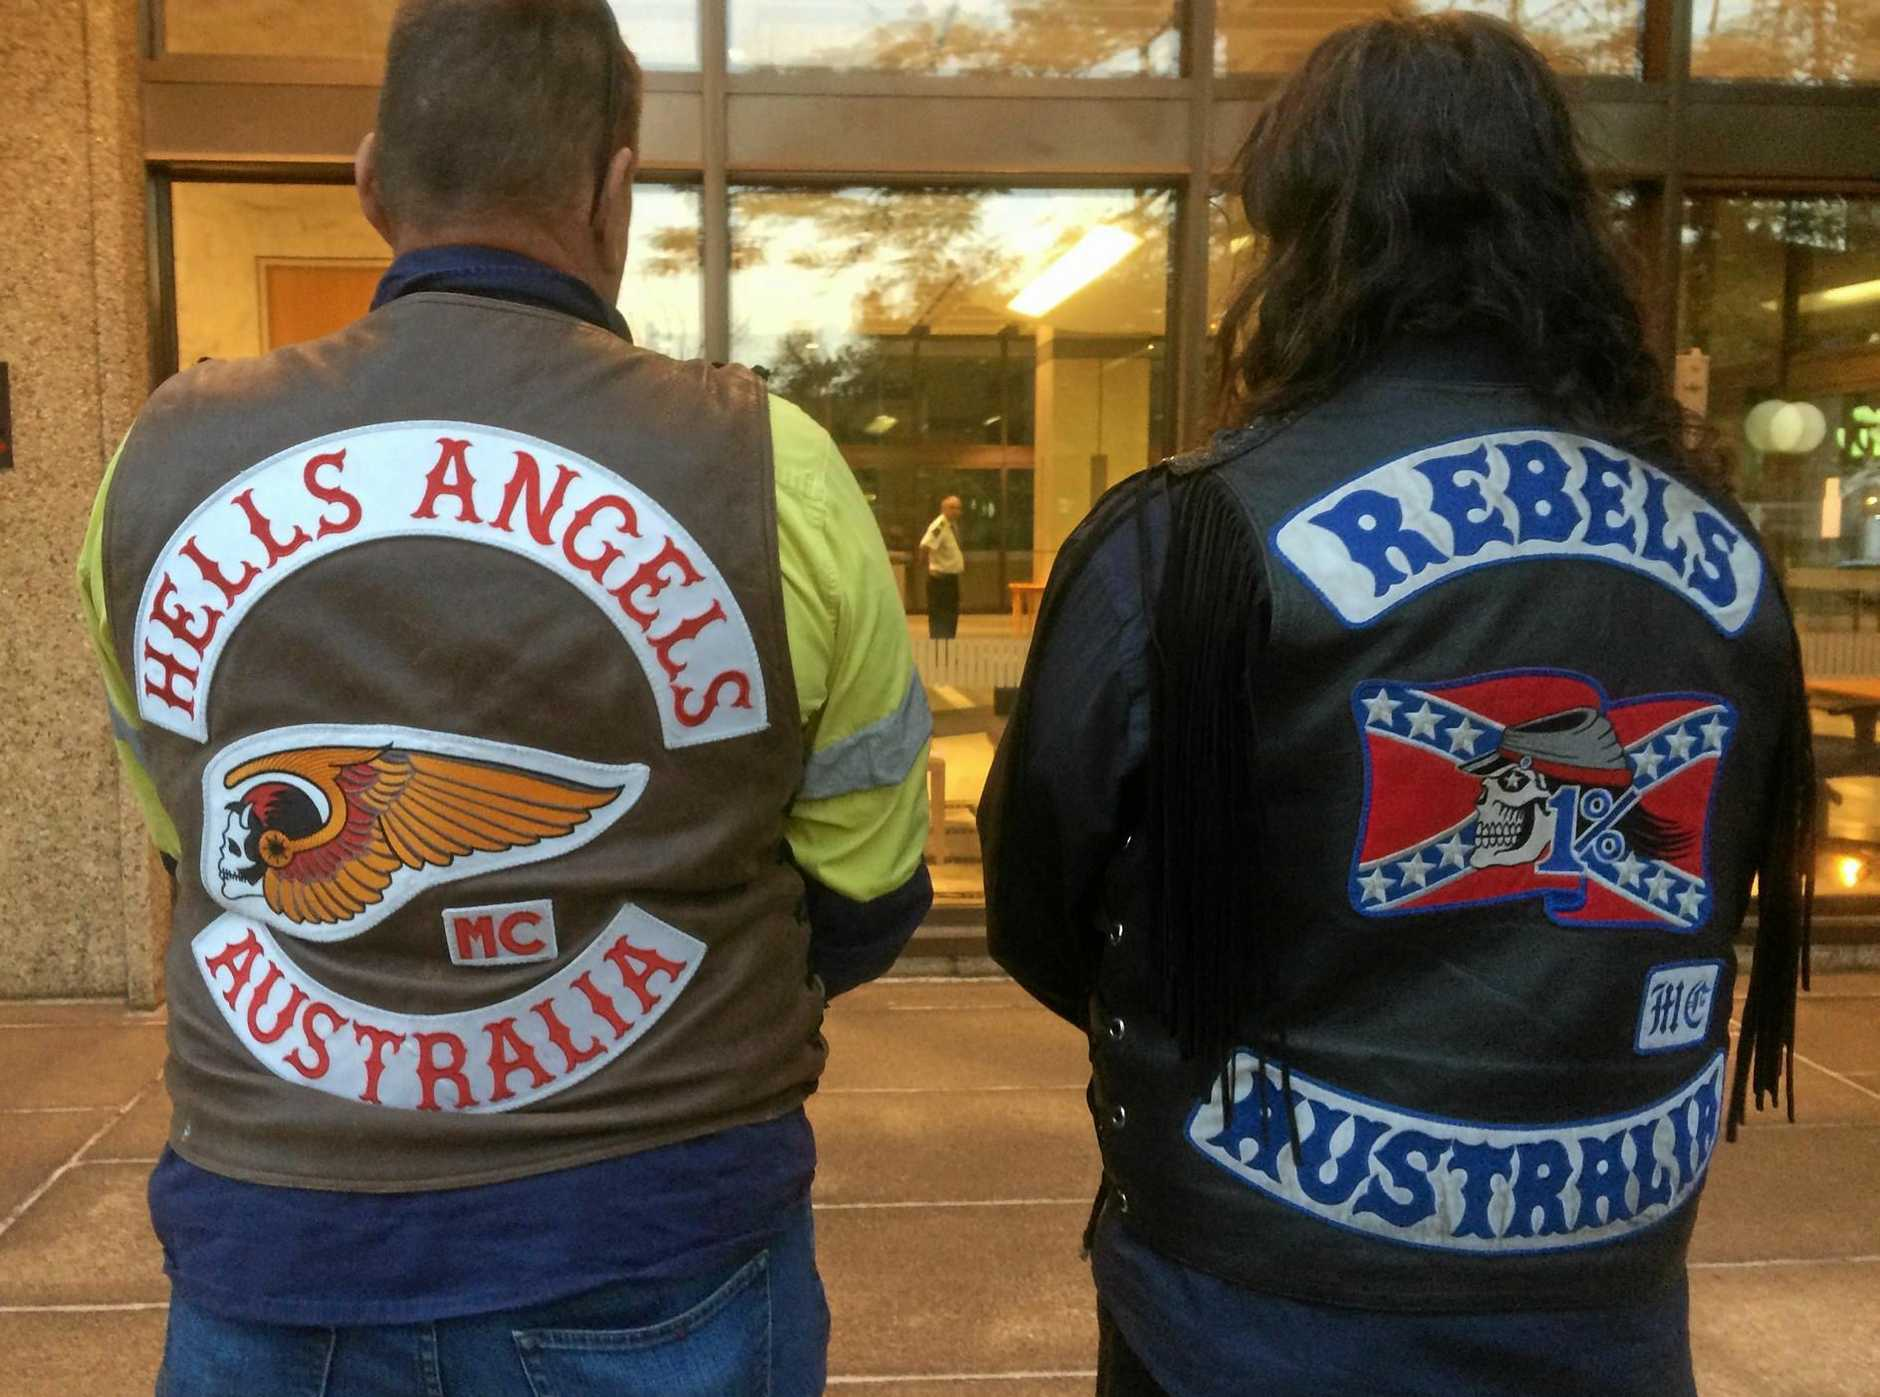 Wearing bikie gang colours in public would be made illegal under the Queensland governnment's proposed laws.